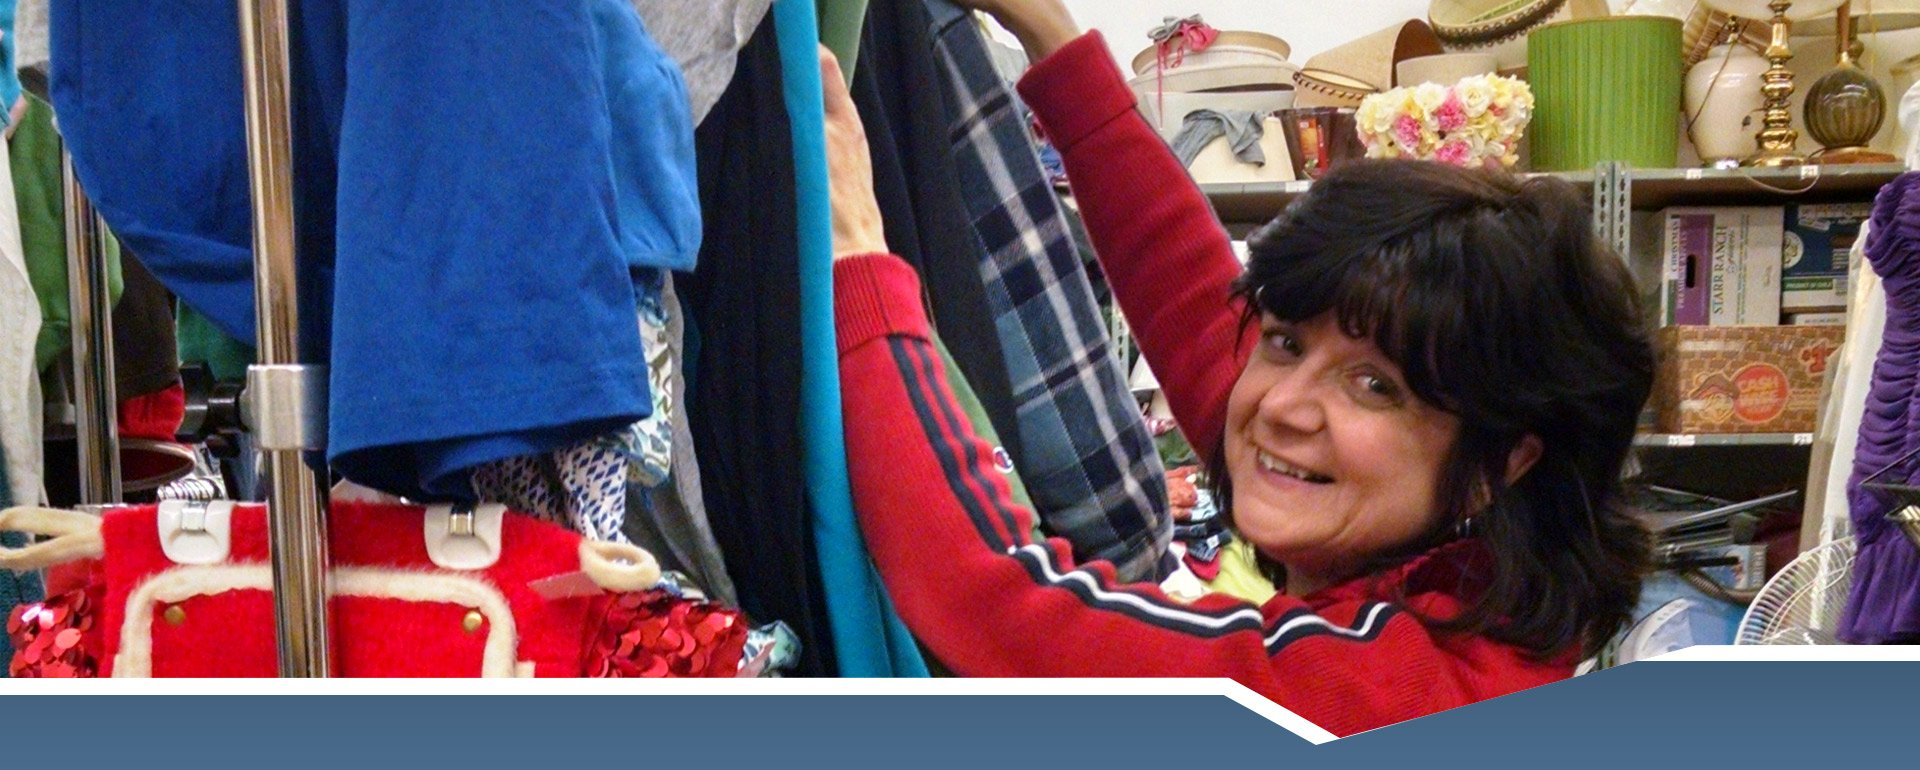 MVAC Thrift Stores Volunteer Donate Shop